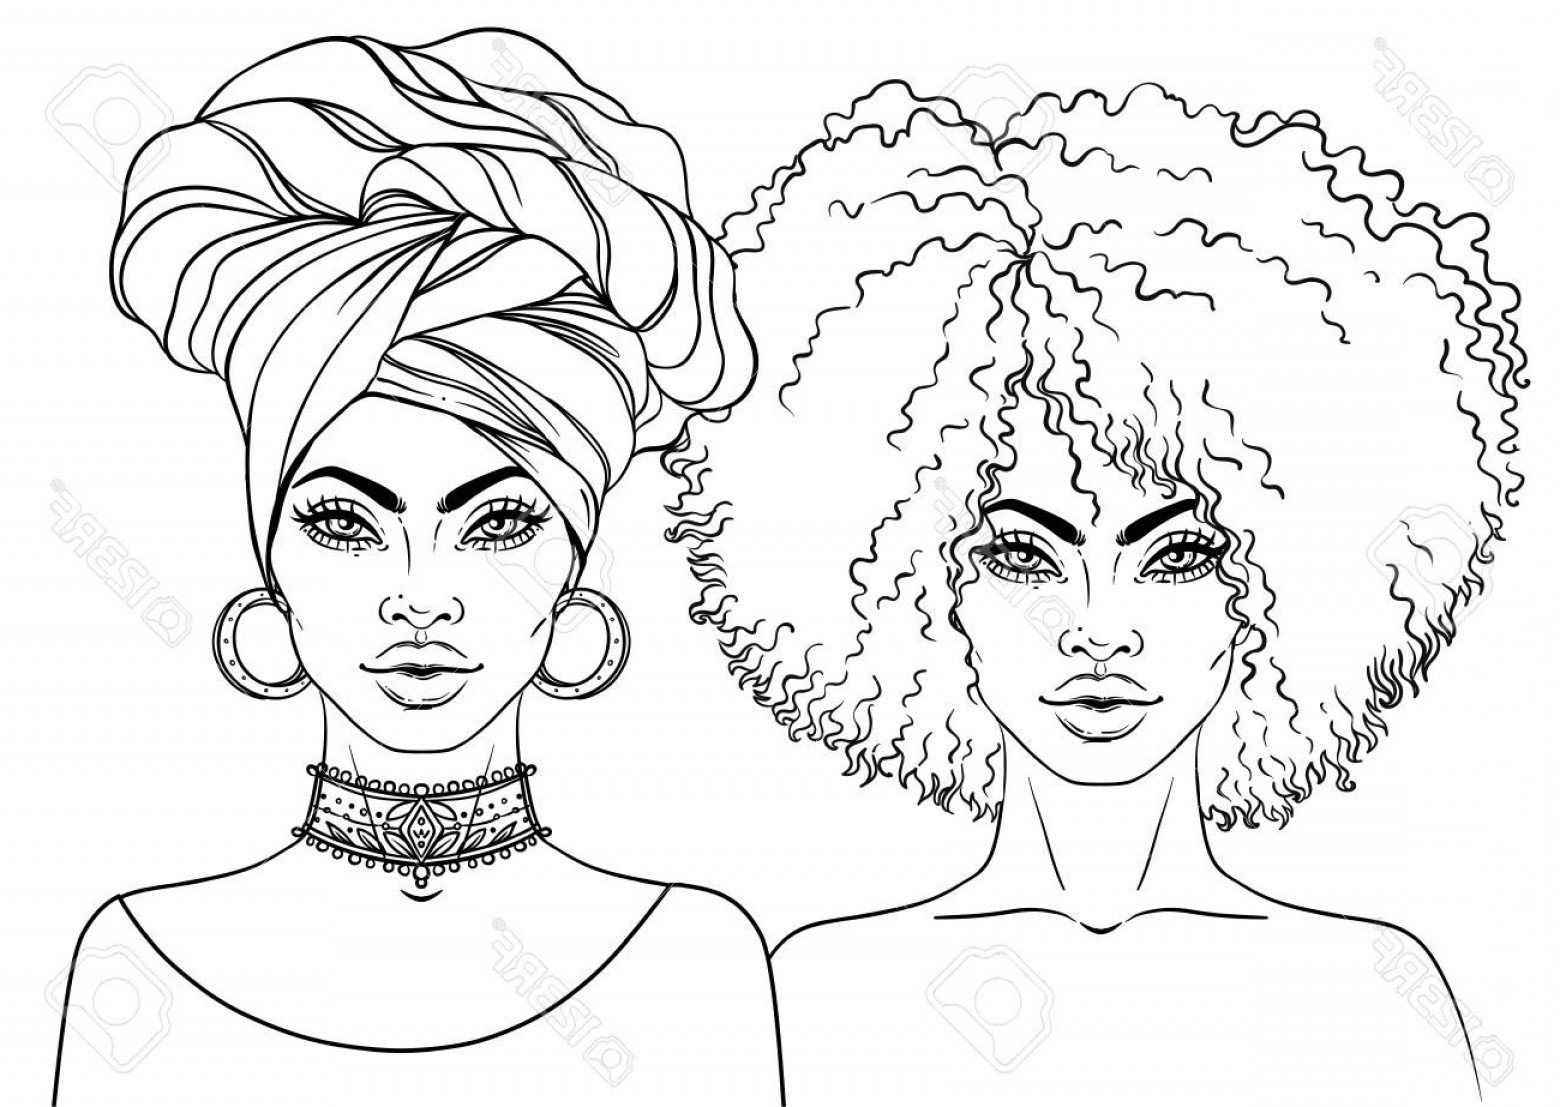 Black Woman Stock Vector: Photostock Vector African American Pretty Girl Vector Illustration Of Black Woman With Afro Hairstyle And Turban Great